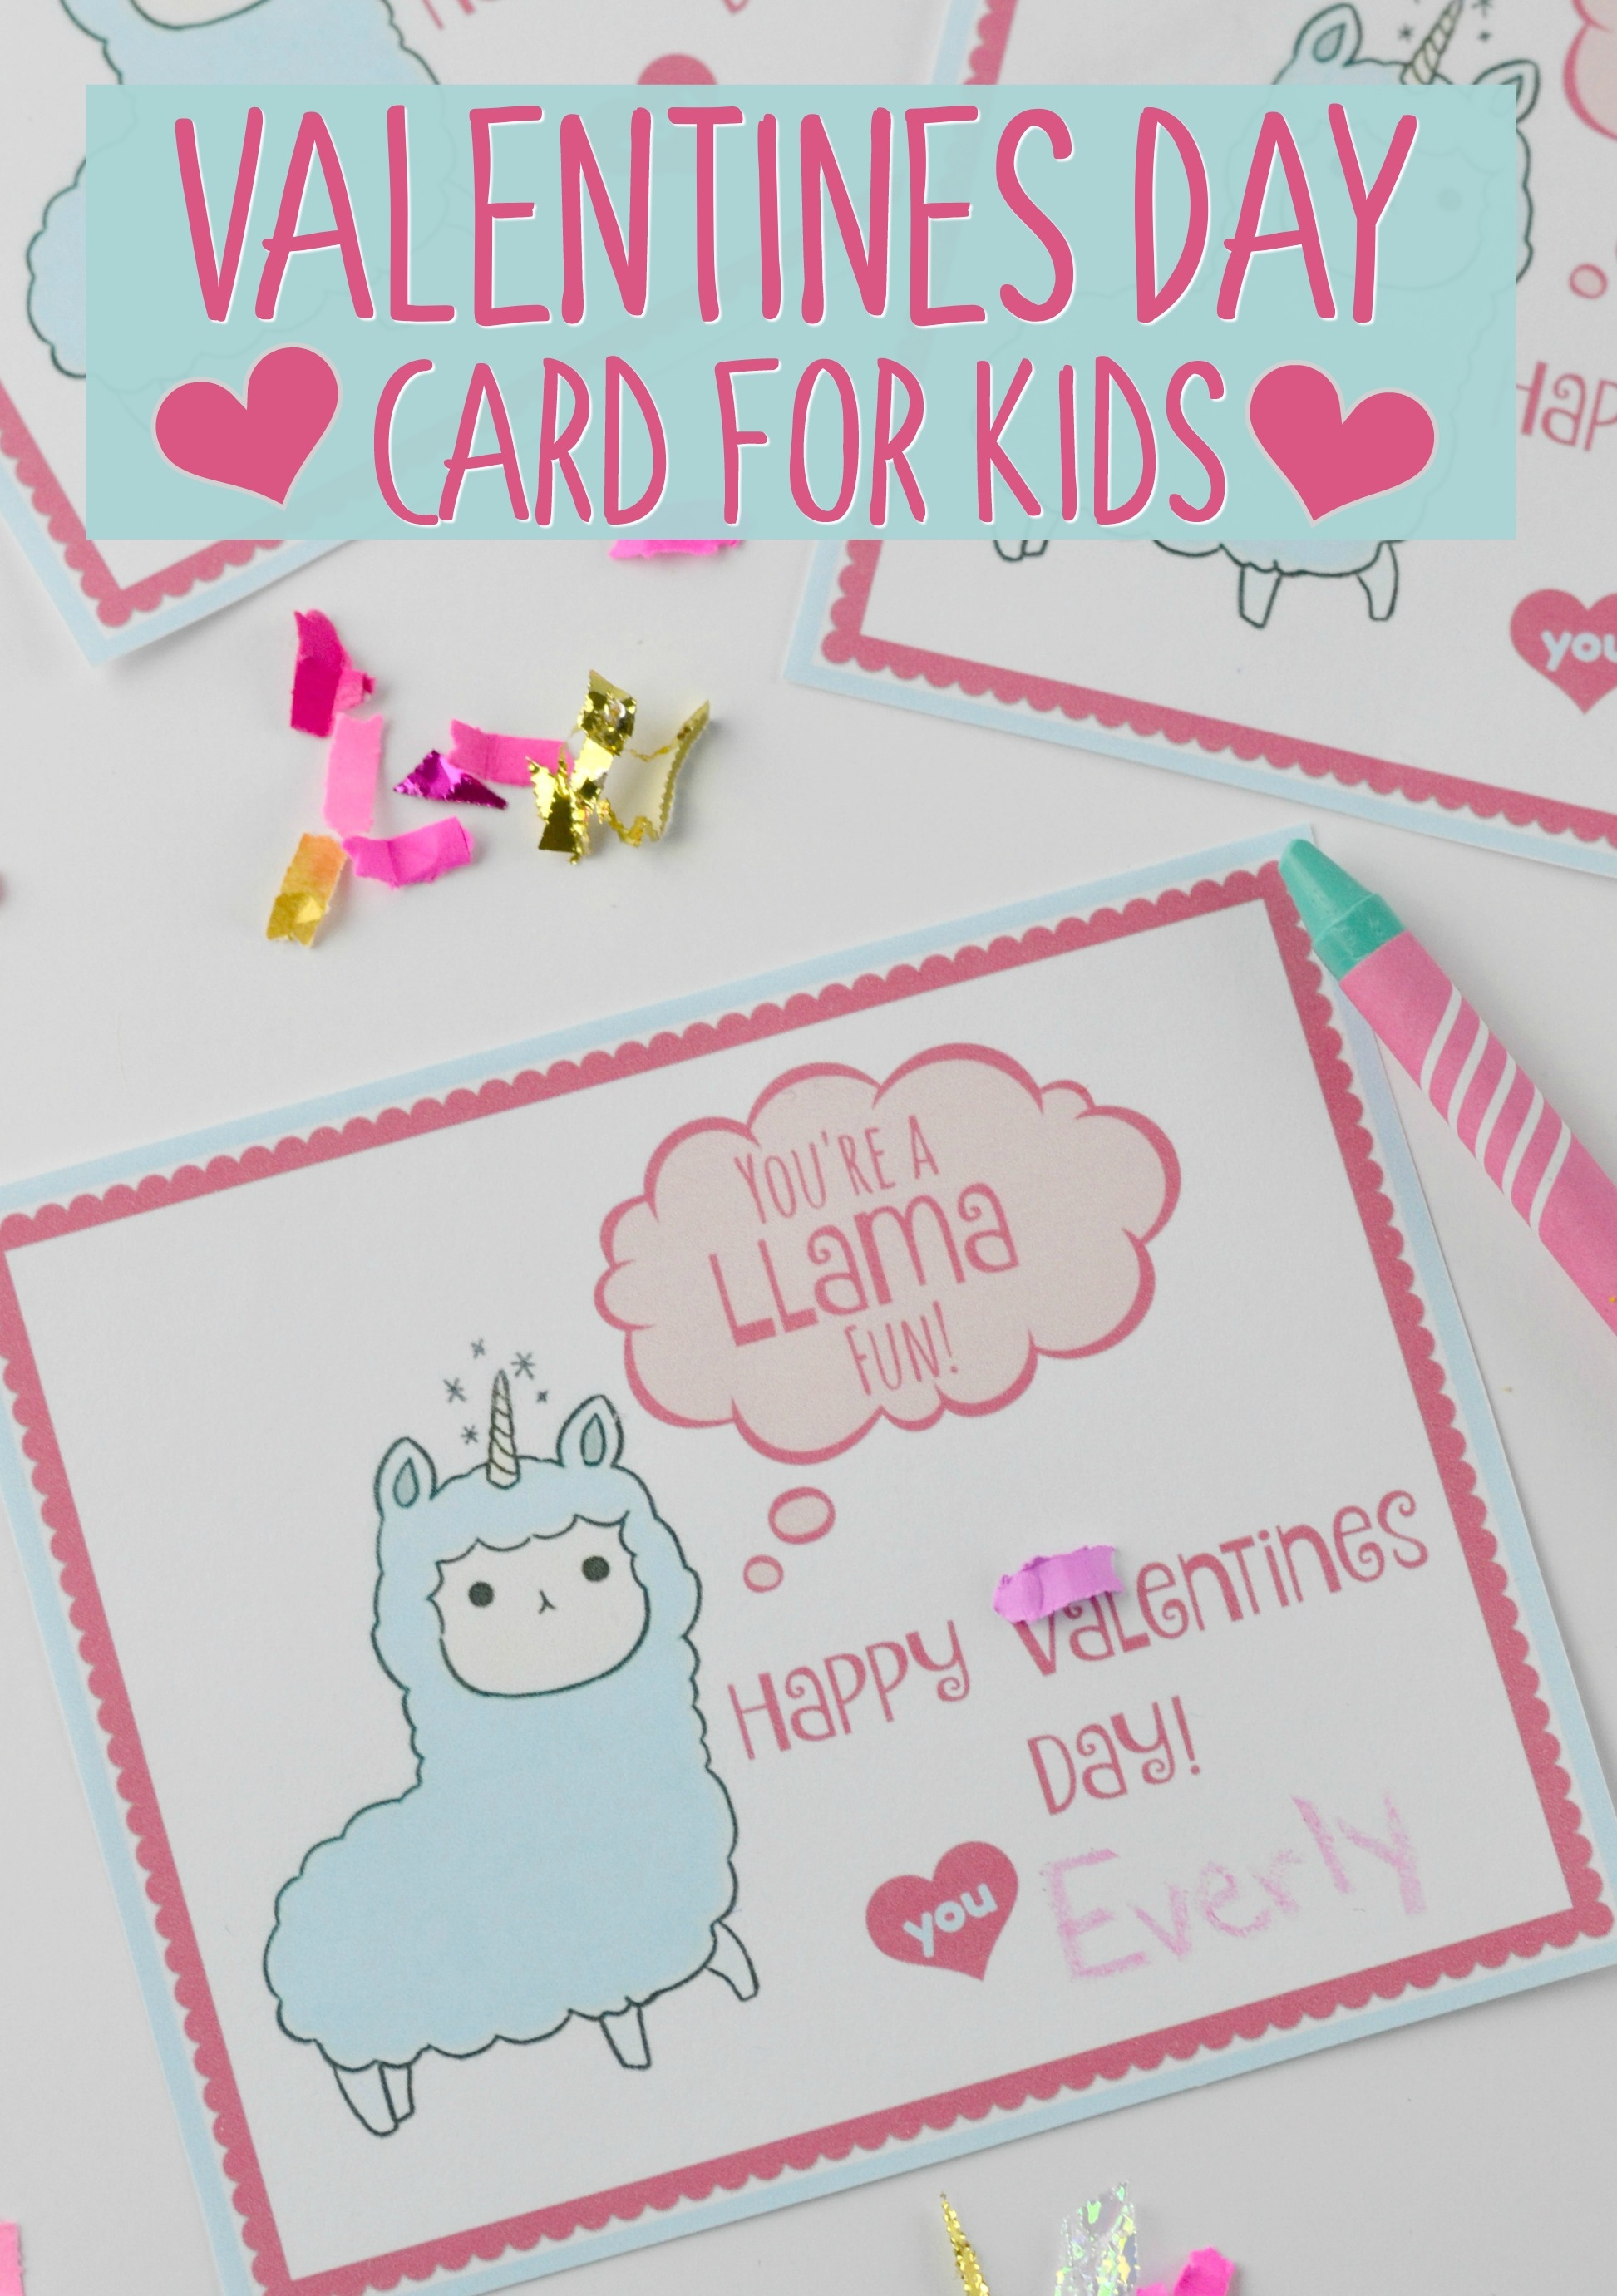 valentines day card for kids free printable valentinesday diyvalentine diy easy - Valentine Day Cards For Kids